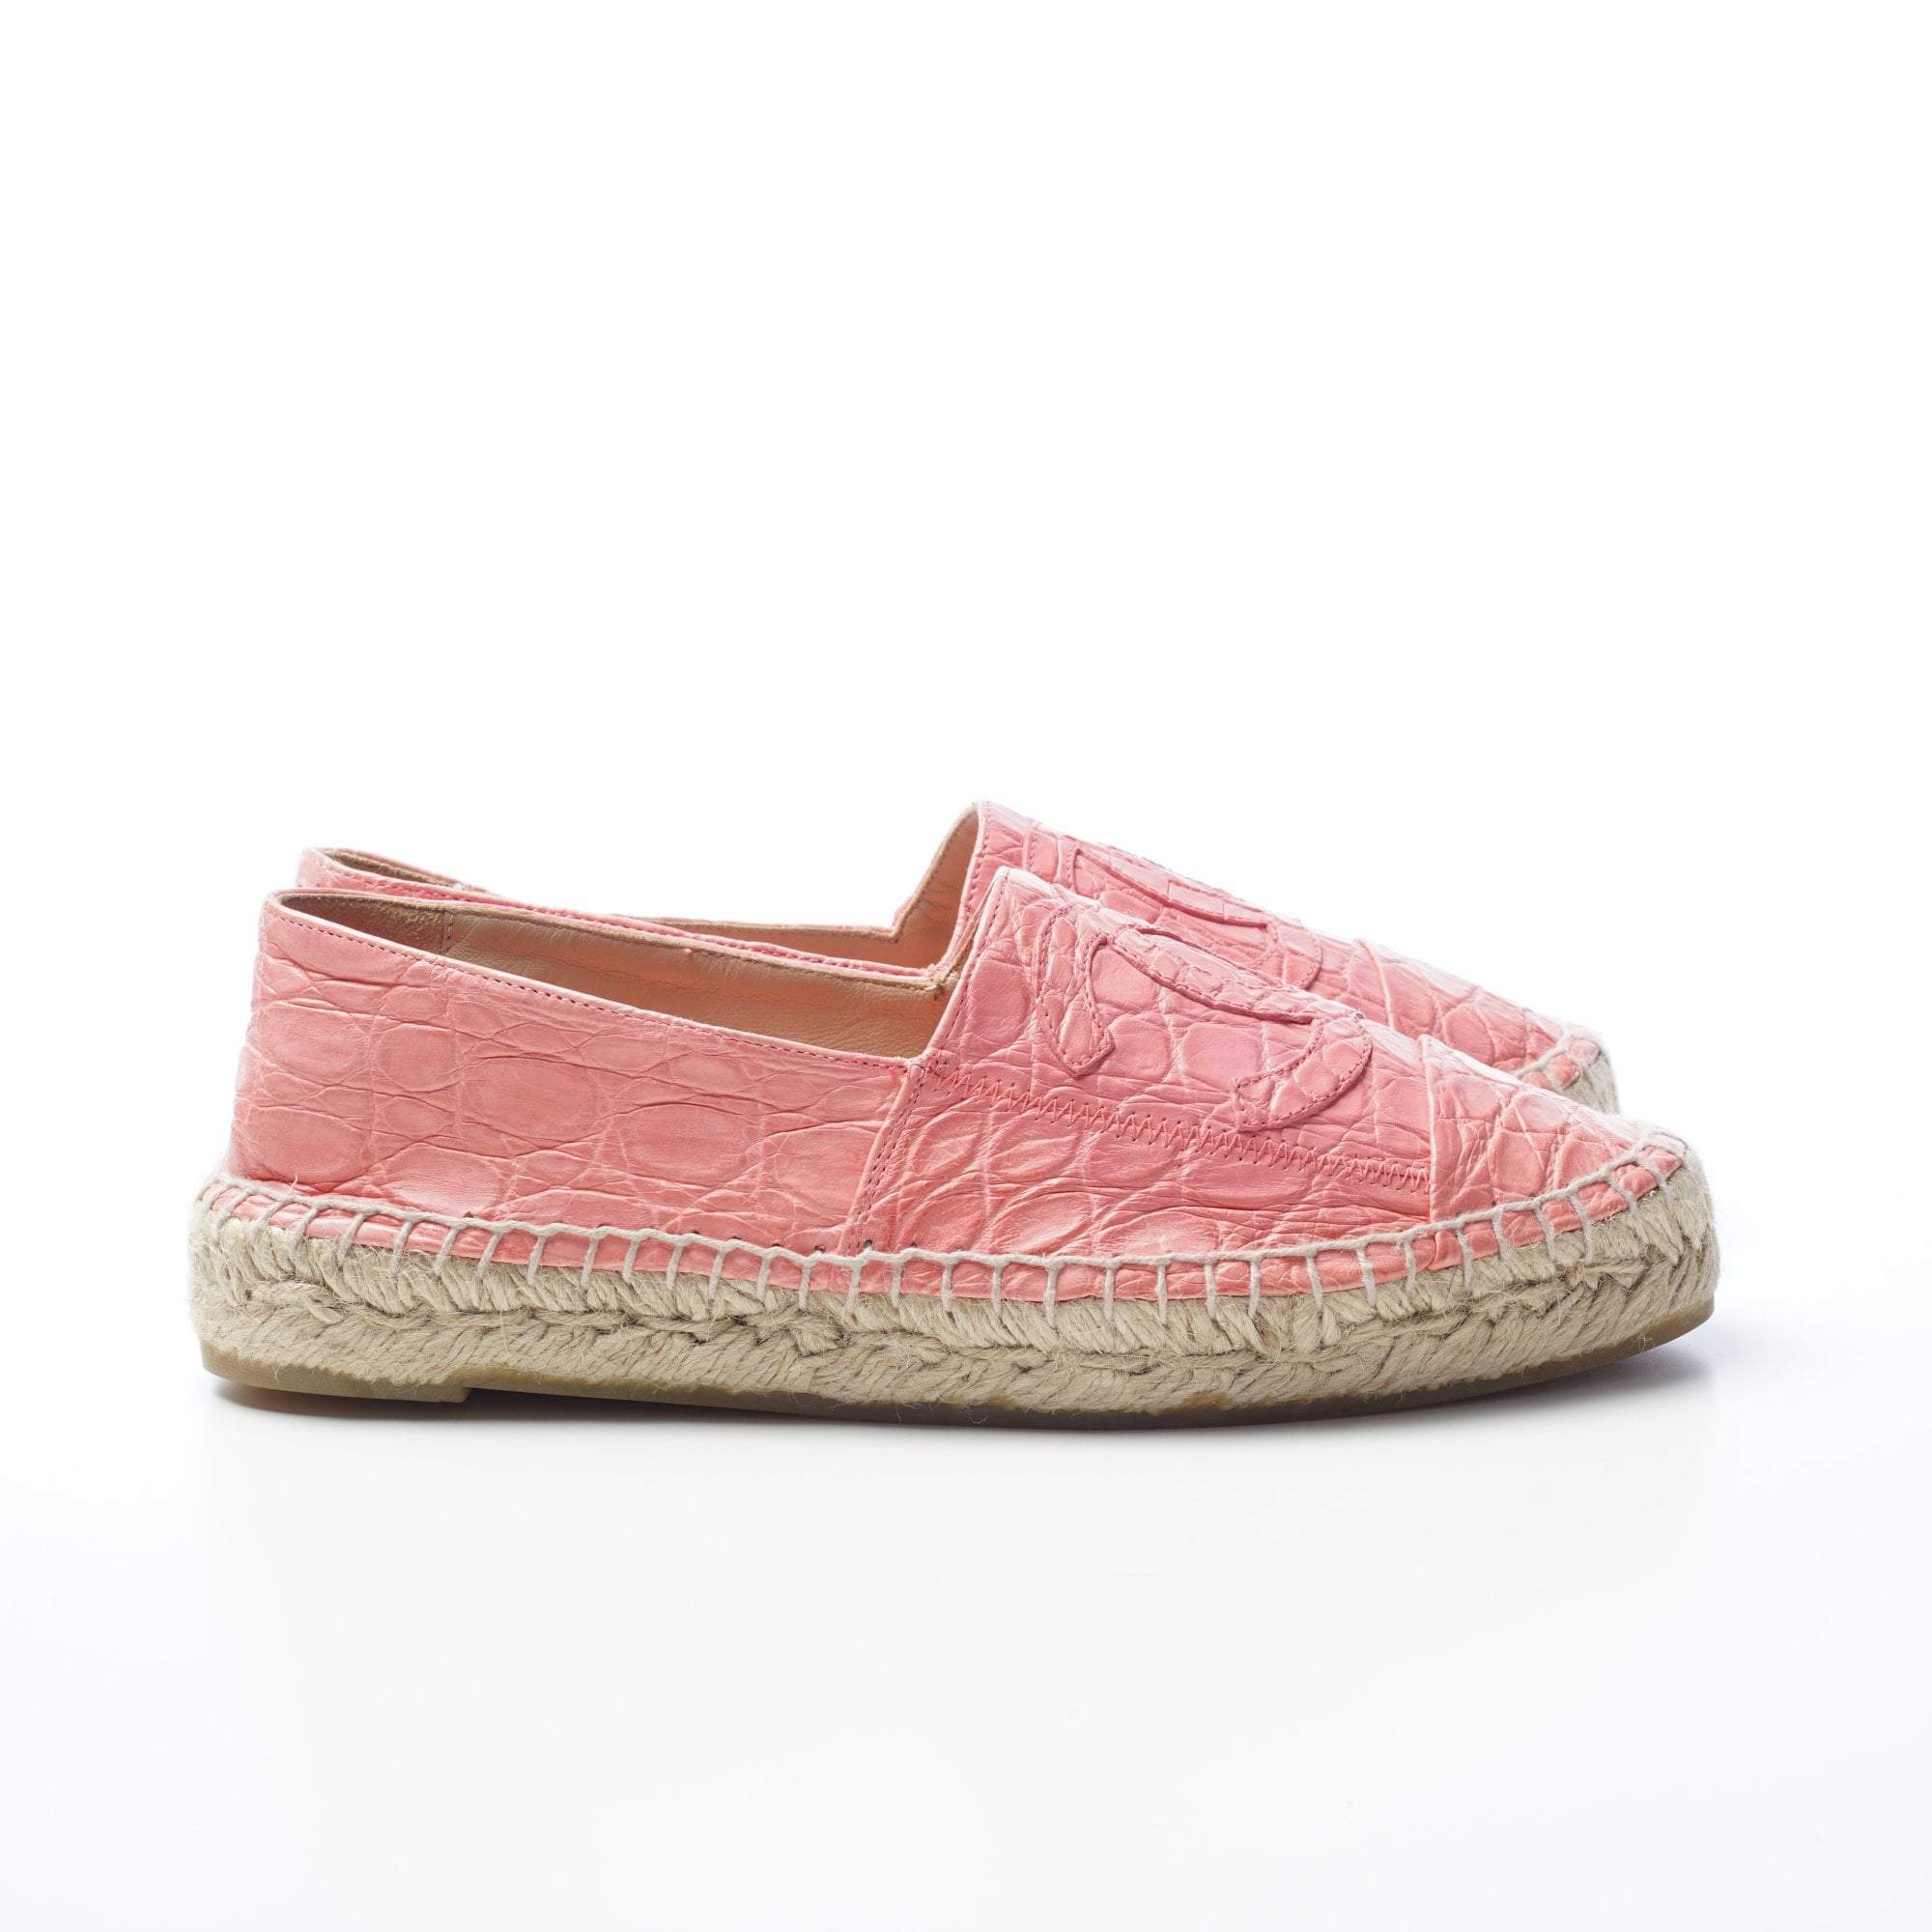 Chanel Pink Croc Embossed Wrinkle Effect Espadrilles